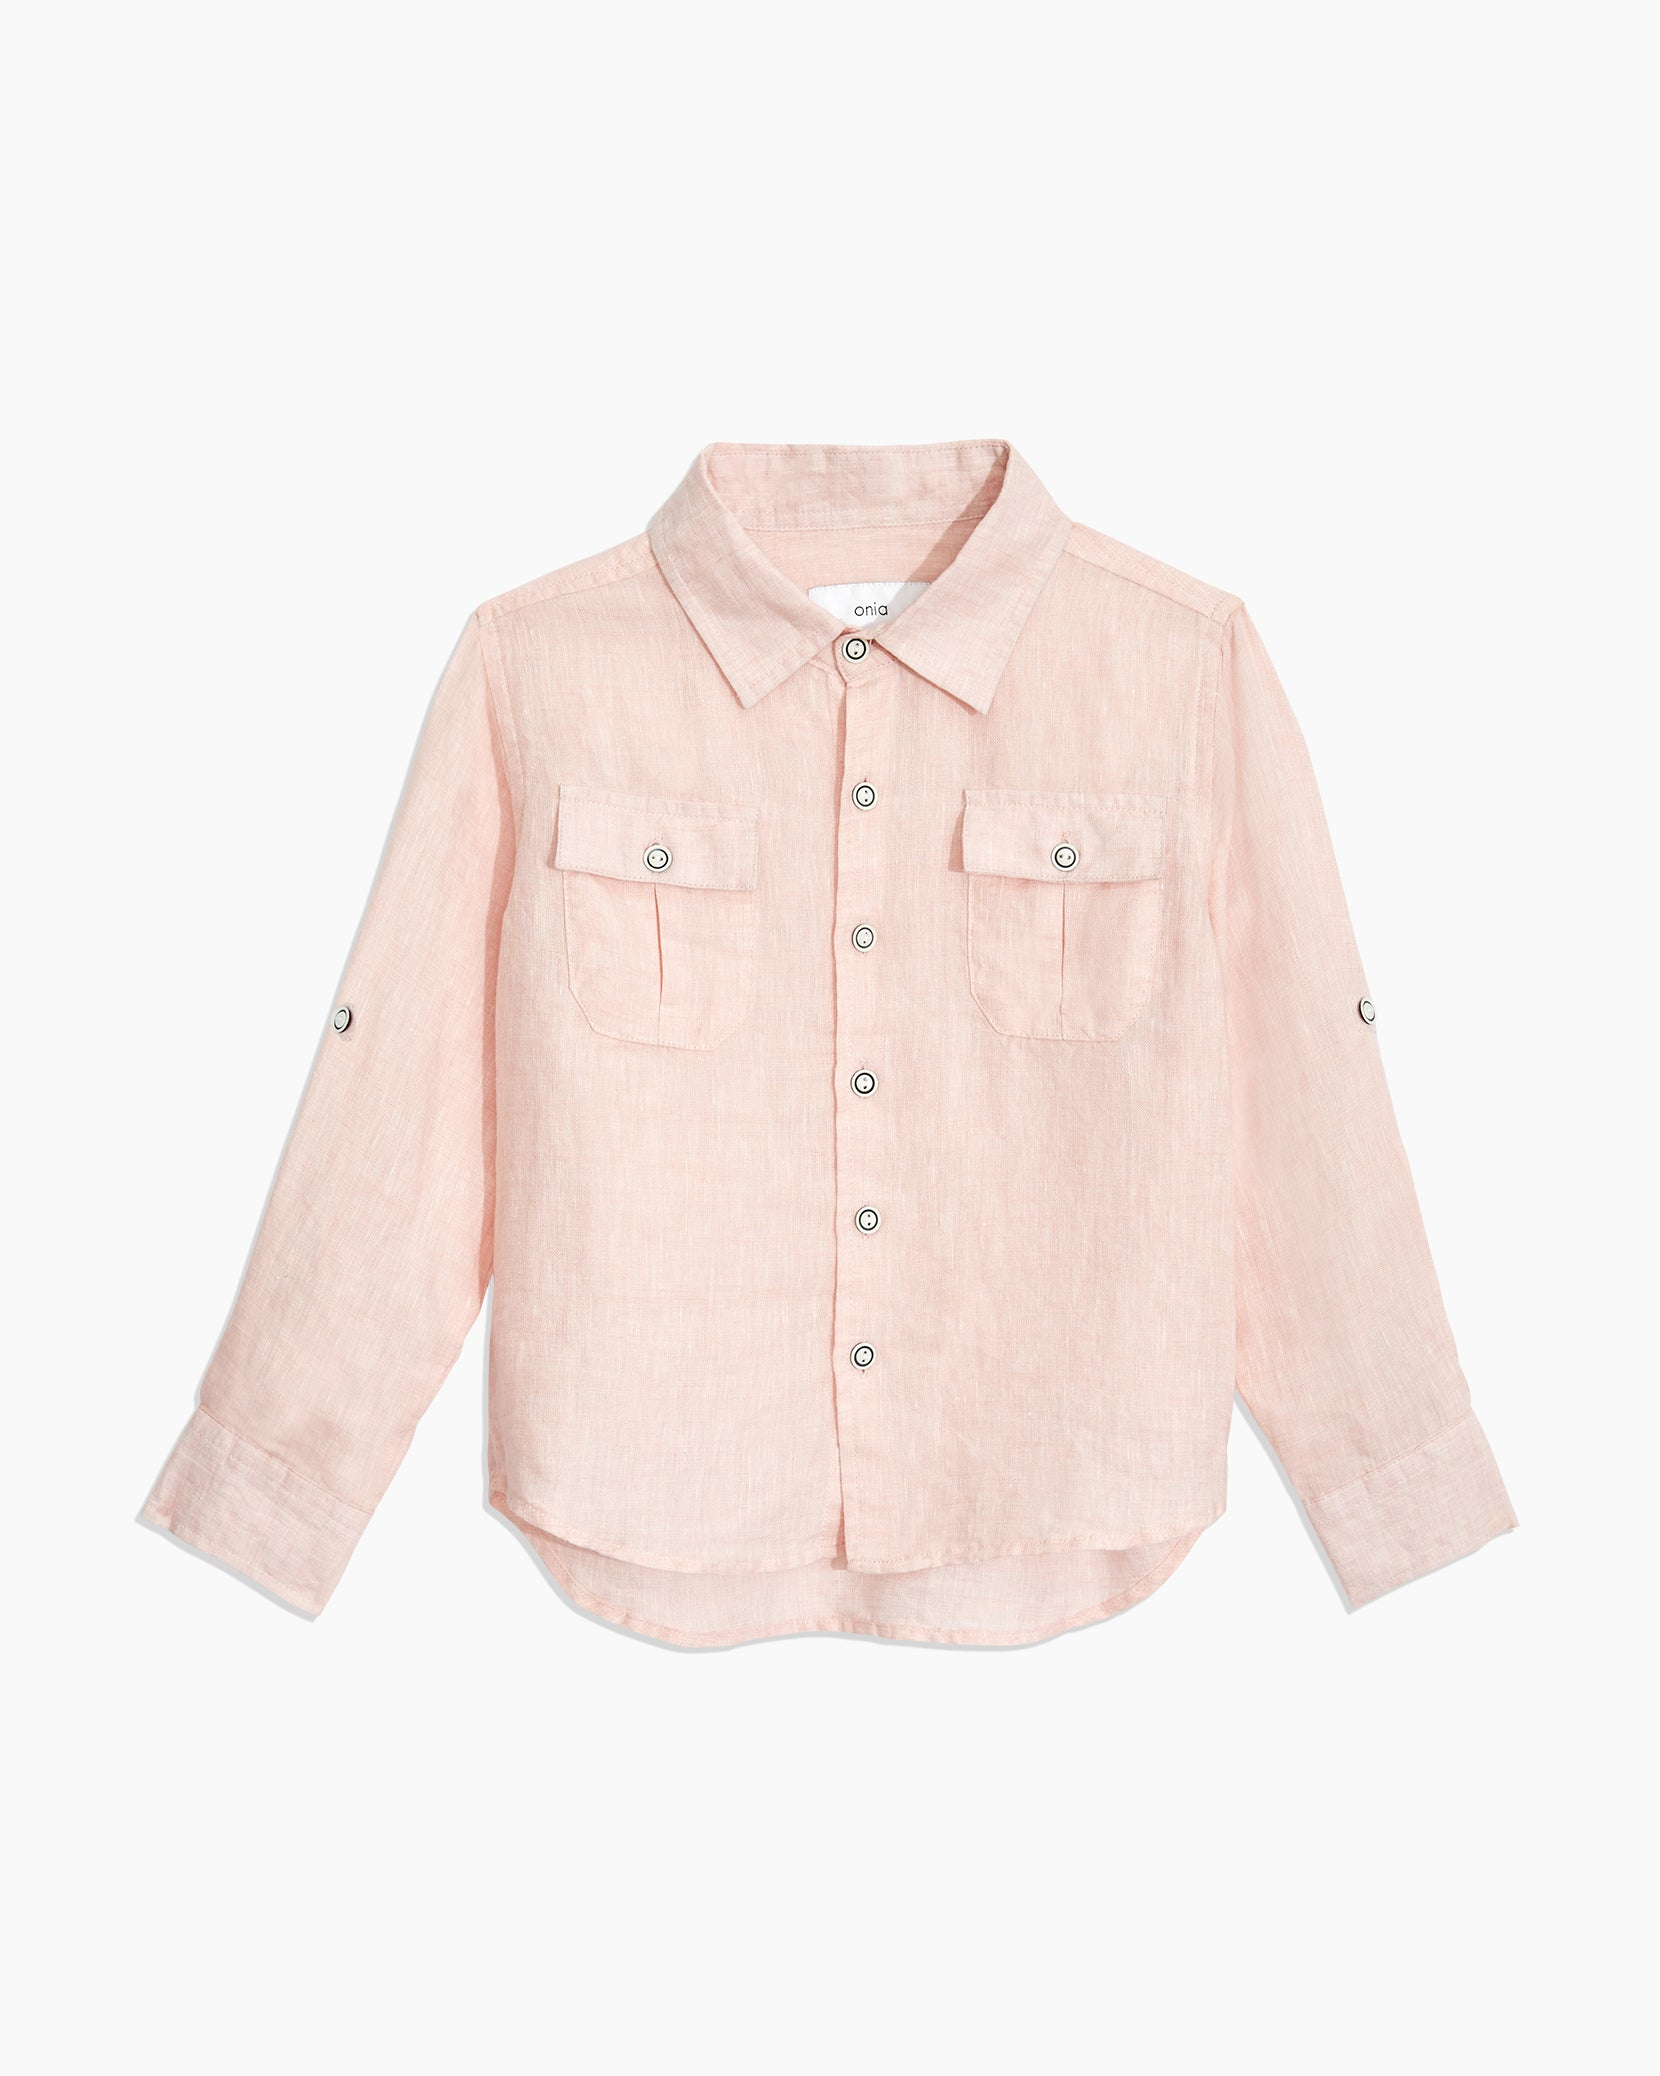 Boys Linen Garret Shirt in Petal - 7 - Onia